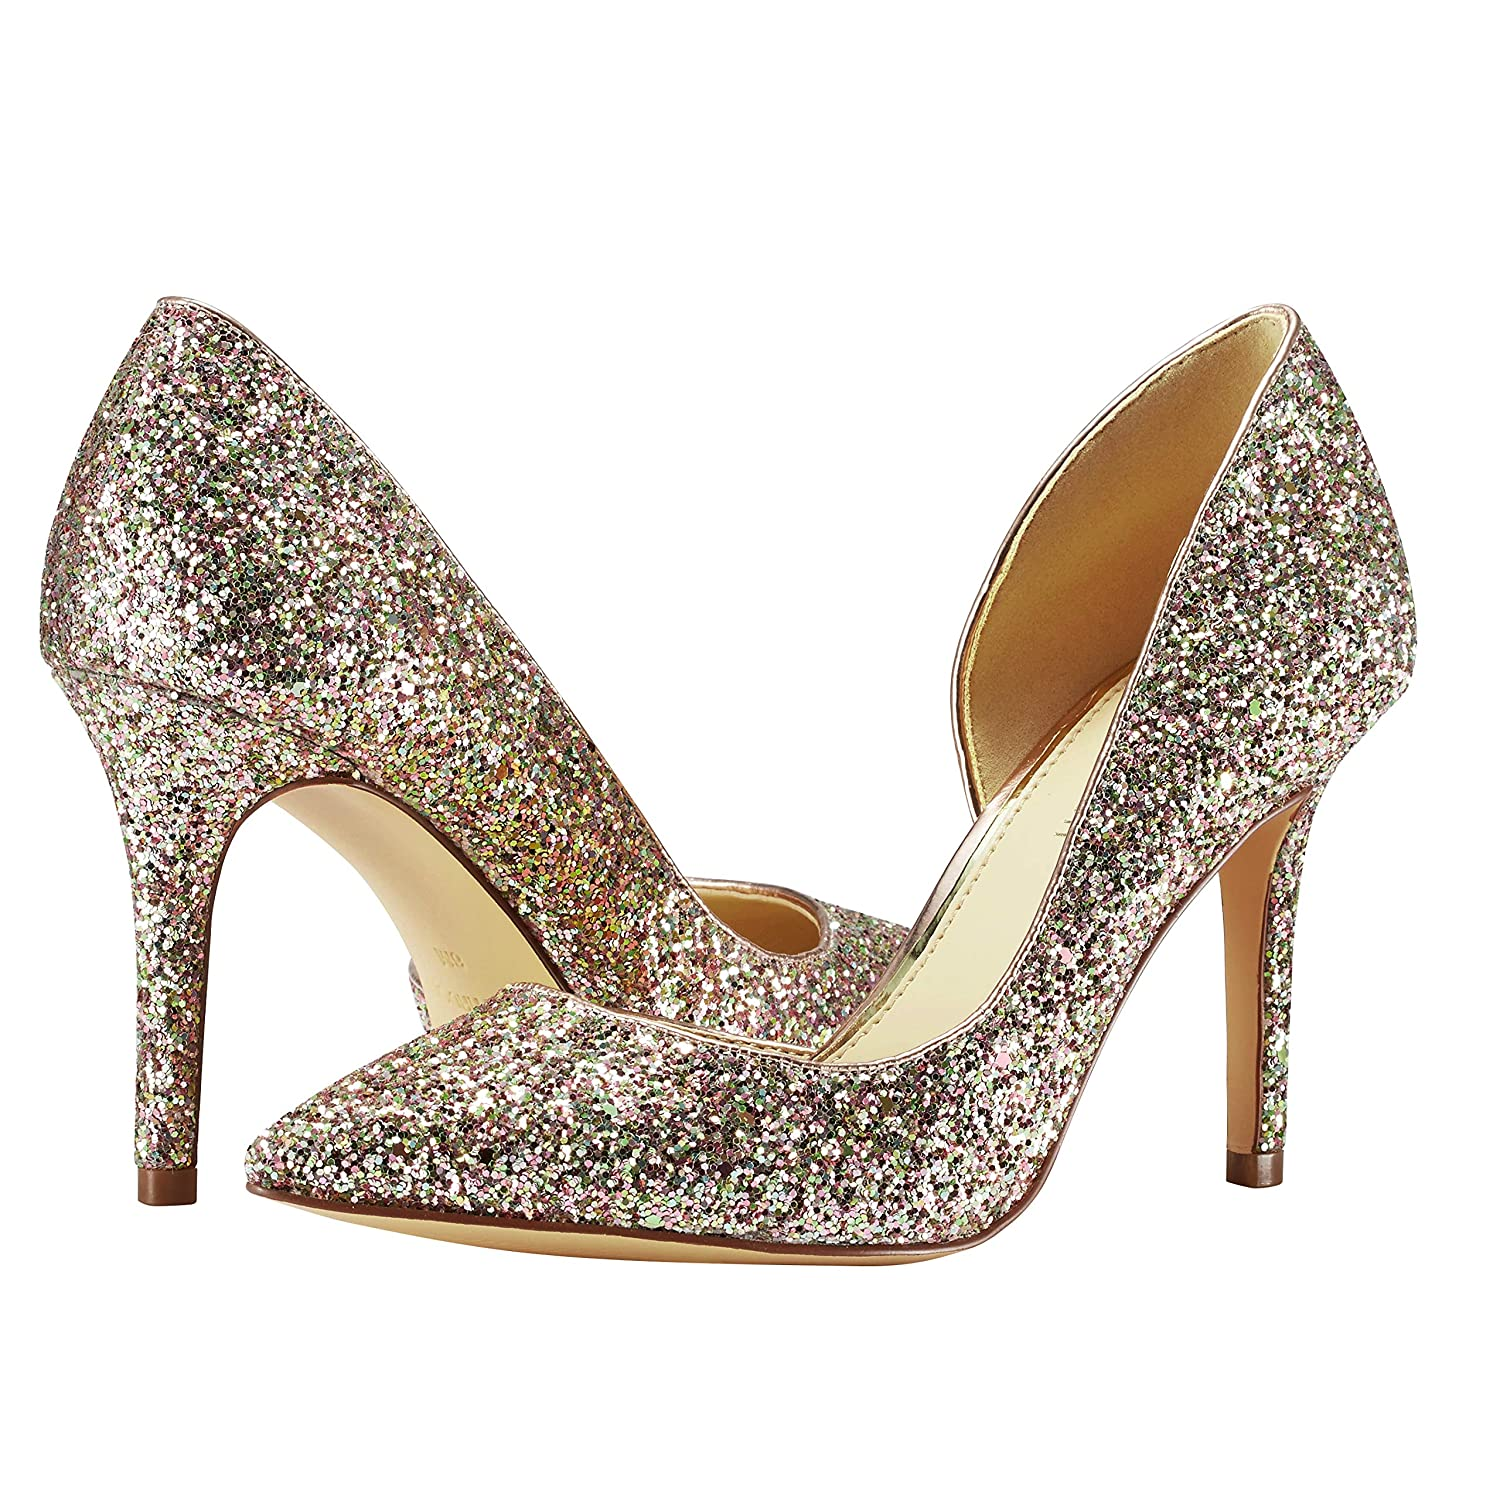 Details about  /JENN ARDOR Stiletto High Heel Pointed Closed Toe Slip On Dress Party Wedding Eve